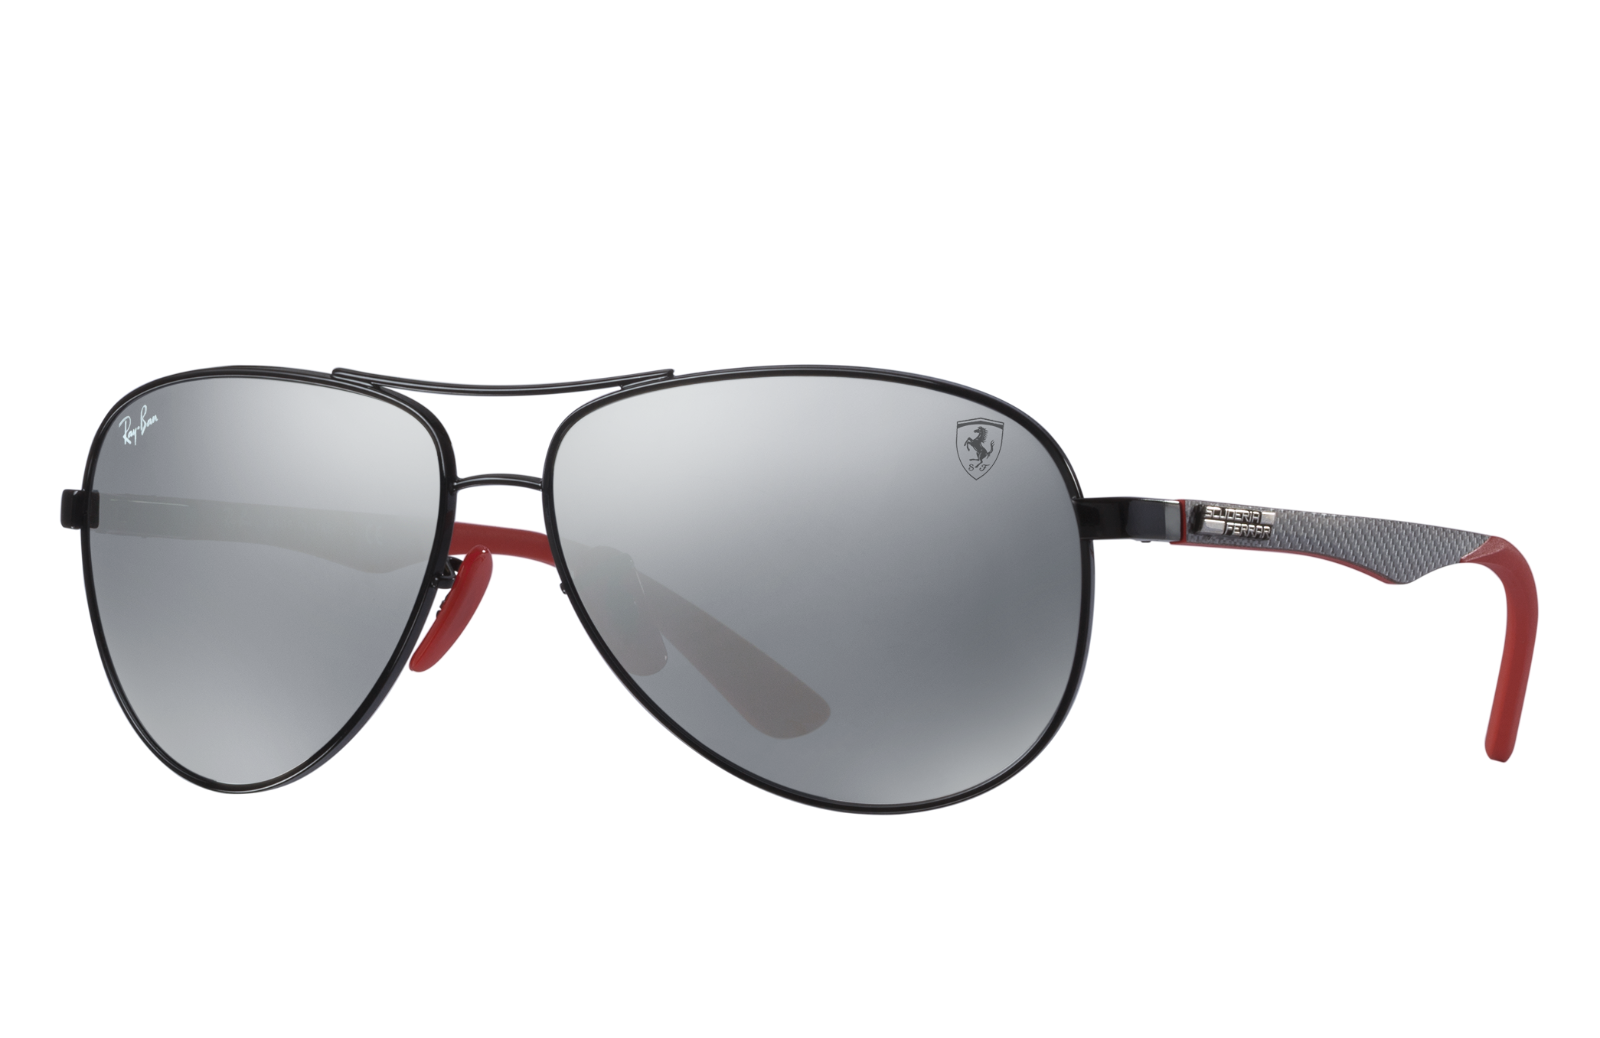 ray ban ferrari sunglasses carbon fiber